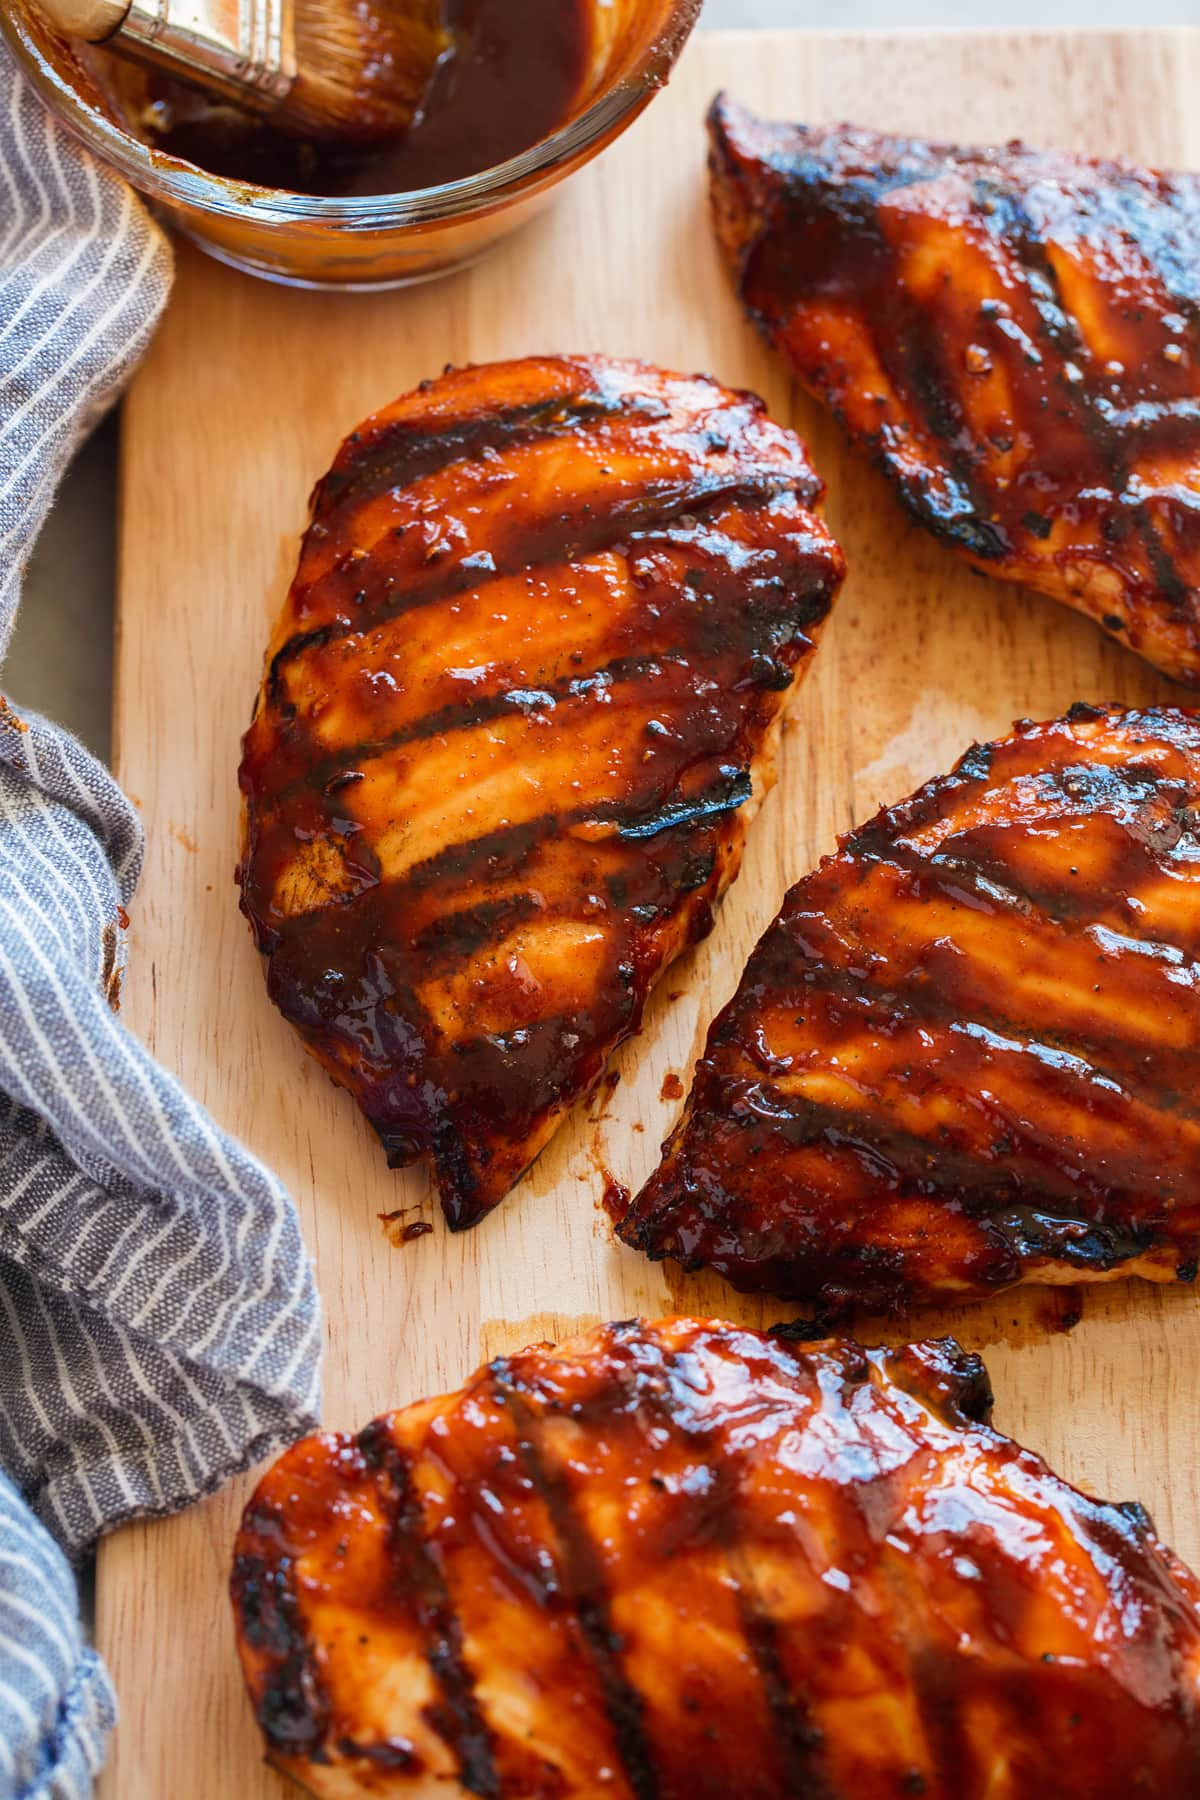 Grilled chicken breasts covered in bbq sauce on a wooden cutting board.